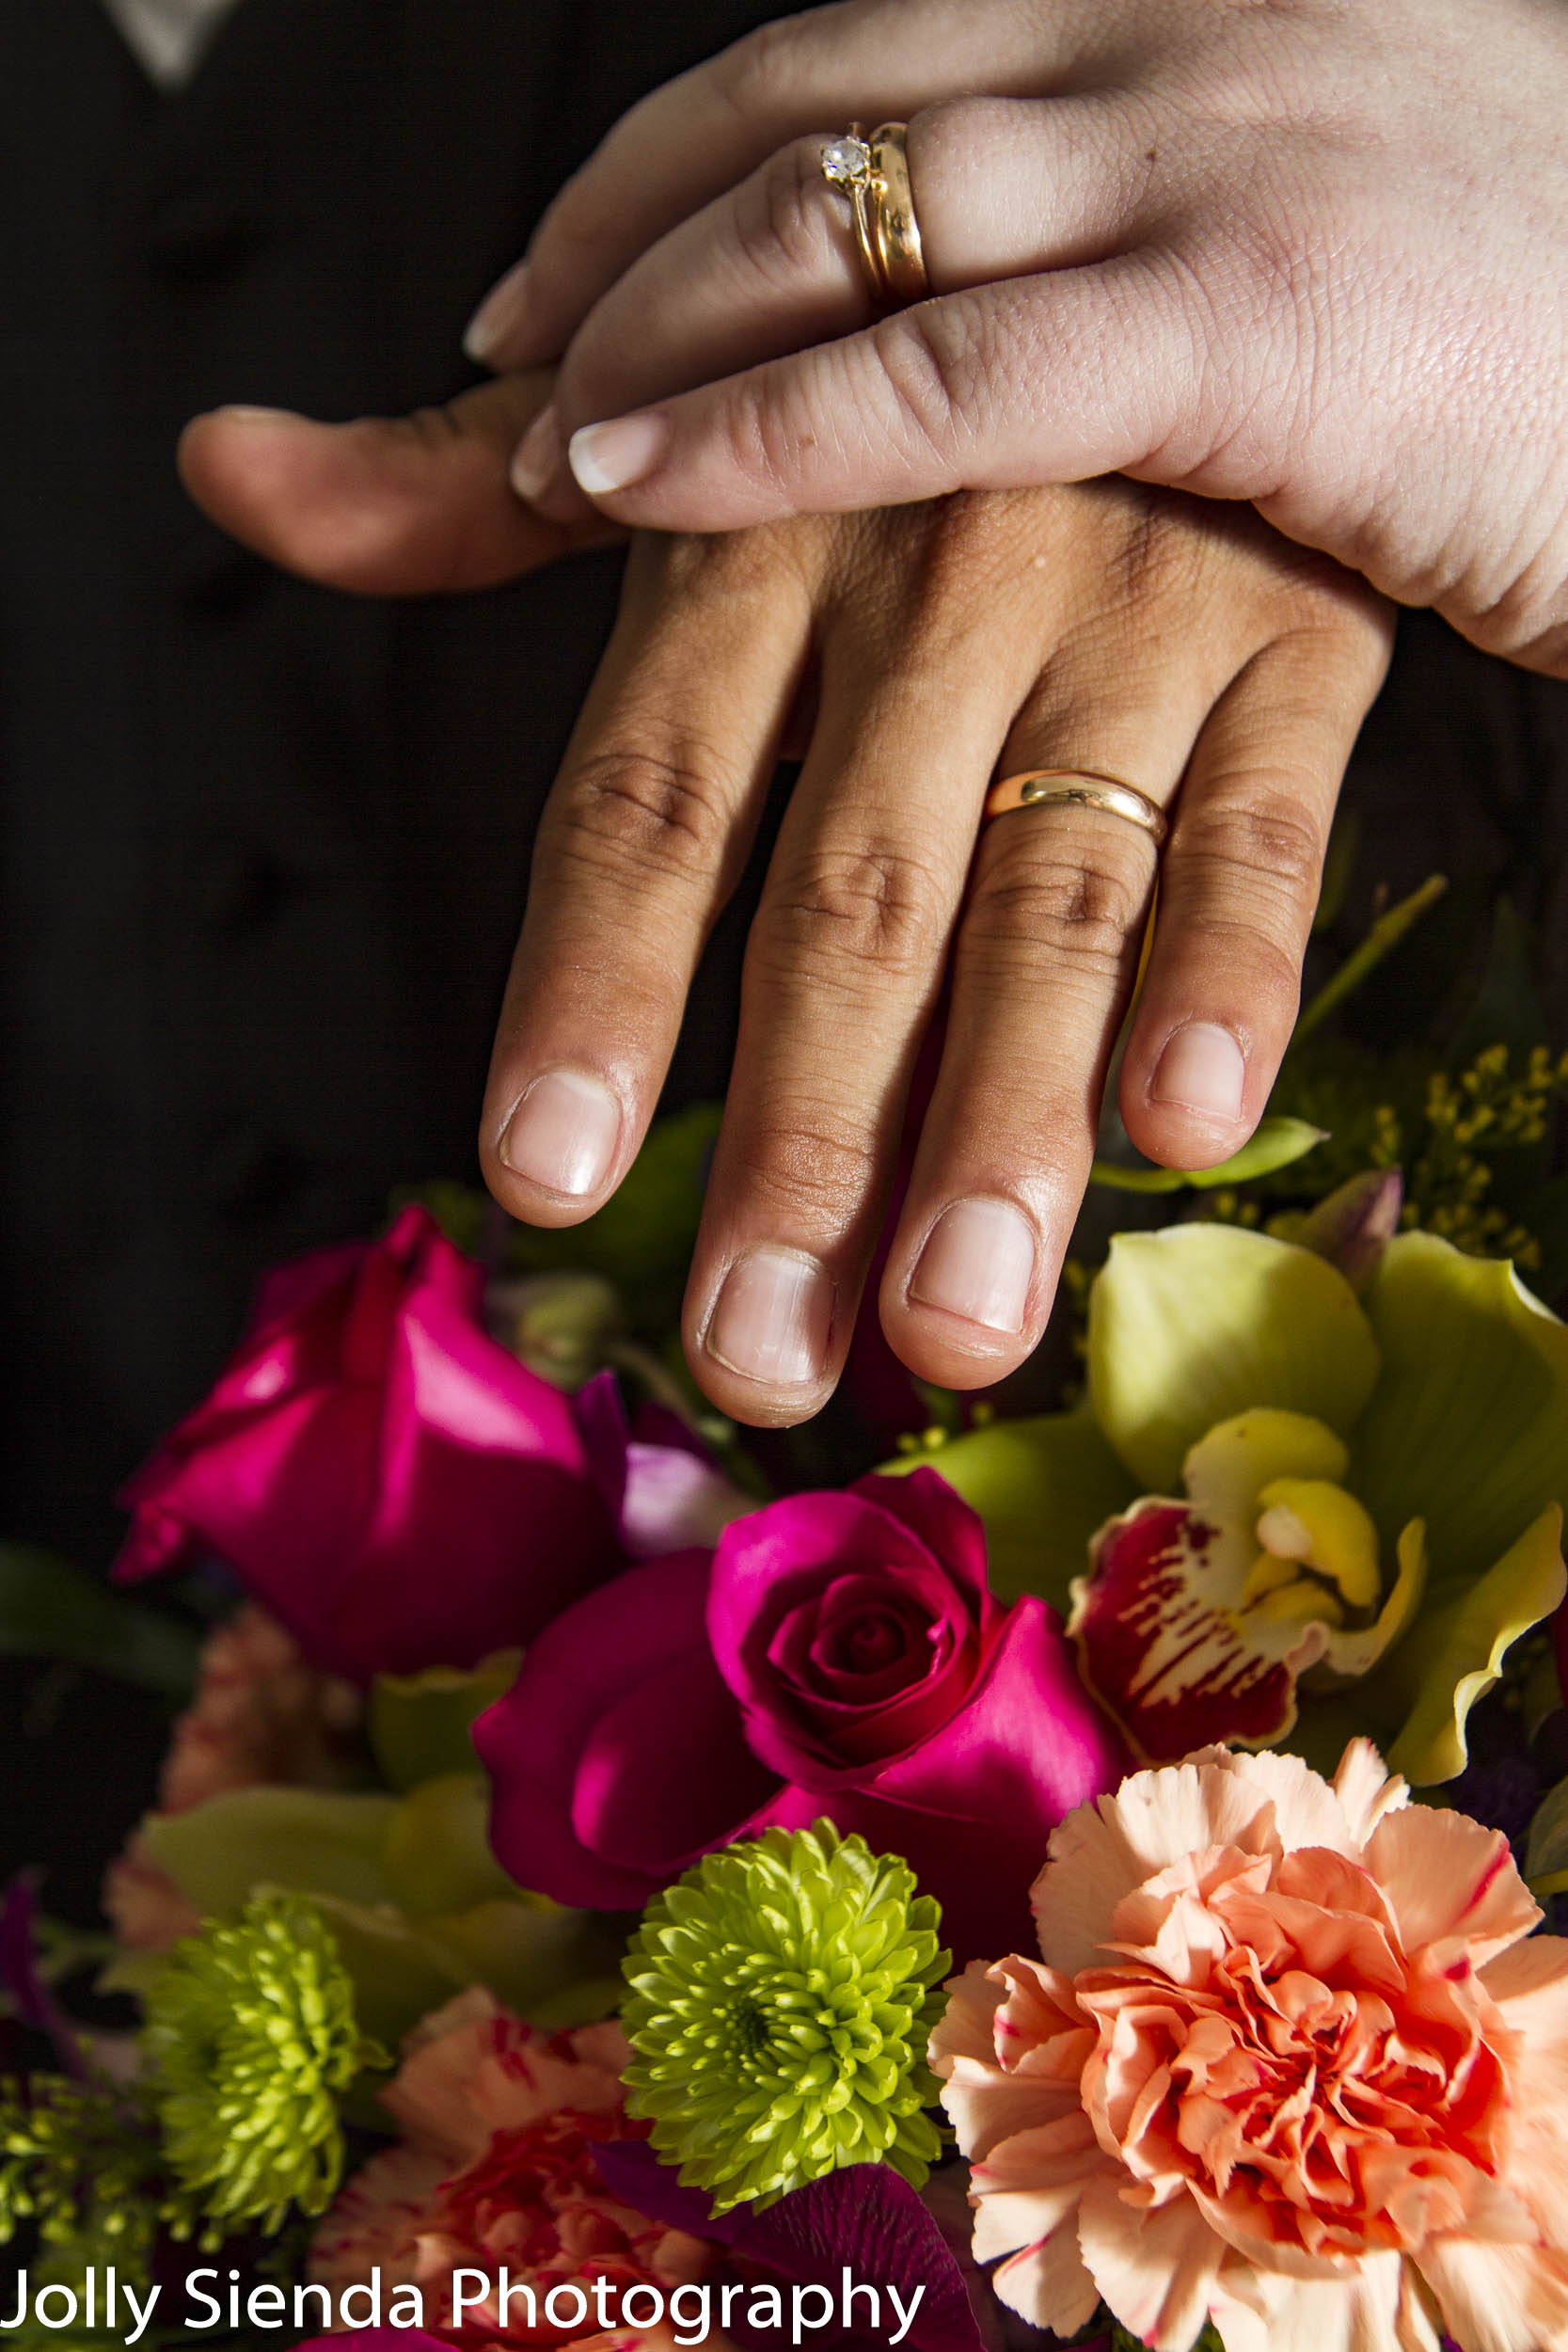 Portrait of the wedding rings and the bouquet